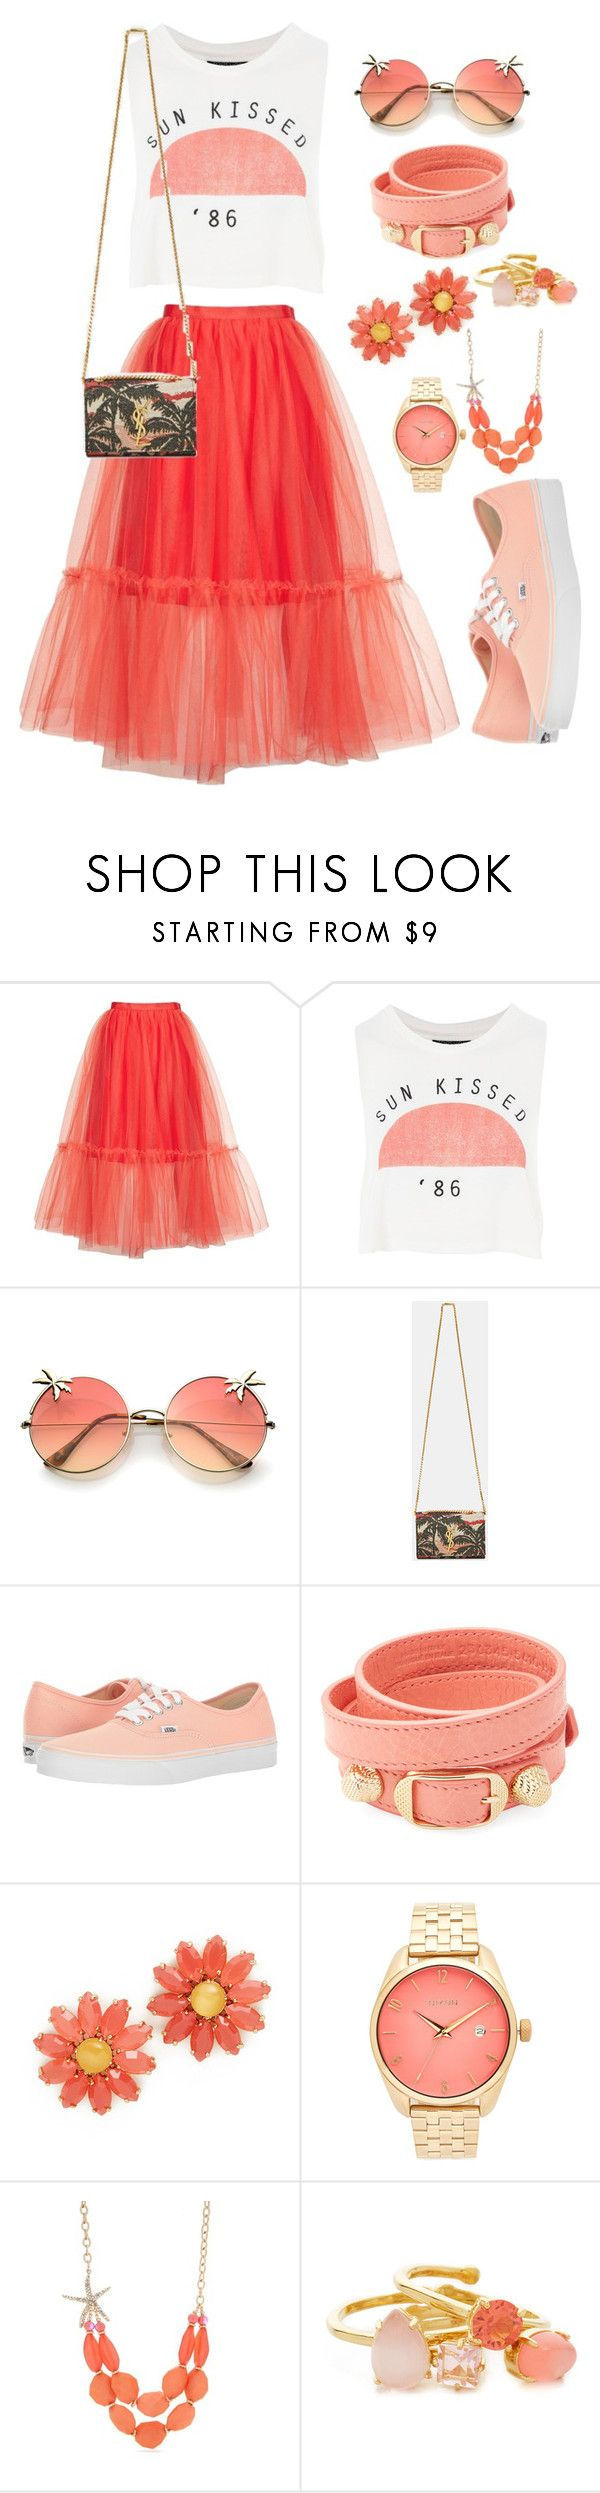 """Dressy casual"" by xmoonagedaydreamx ❤ liked on Polyvore featuring Topshop, Yves Saint Laurent, Vans, Balenciaga, Kate Spade, Nixon, Kim Rogers, Summer, sun and vans"